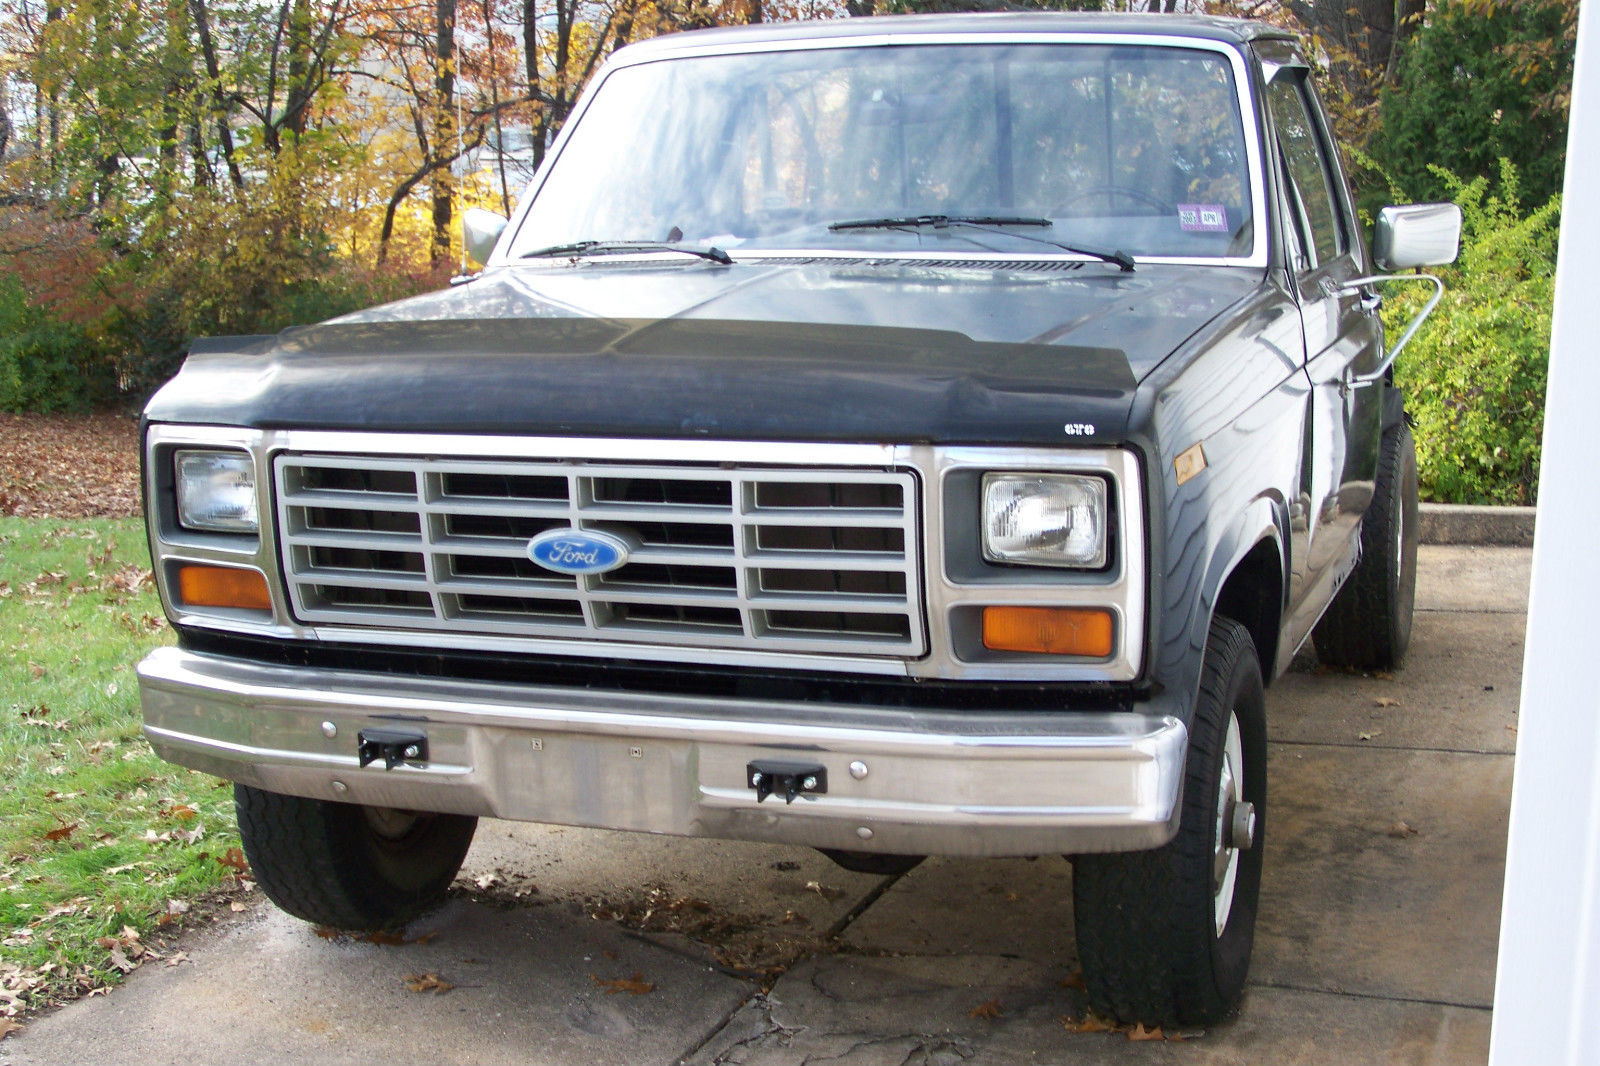 ford f150 stepside 4x4 1984 restoration project classic ford f 150 1984 for sale. Black Bedroom Furniture Sets. Home Design Ideas